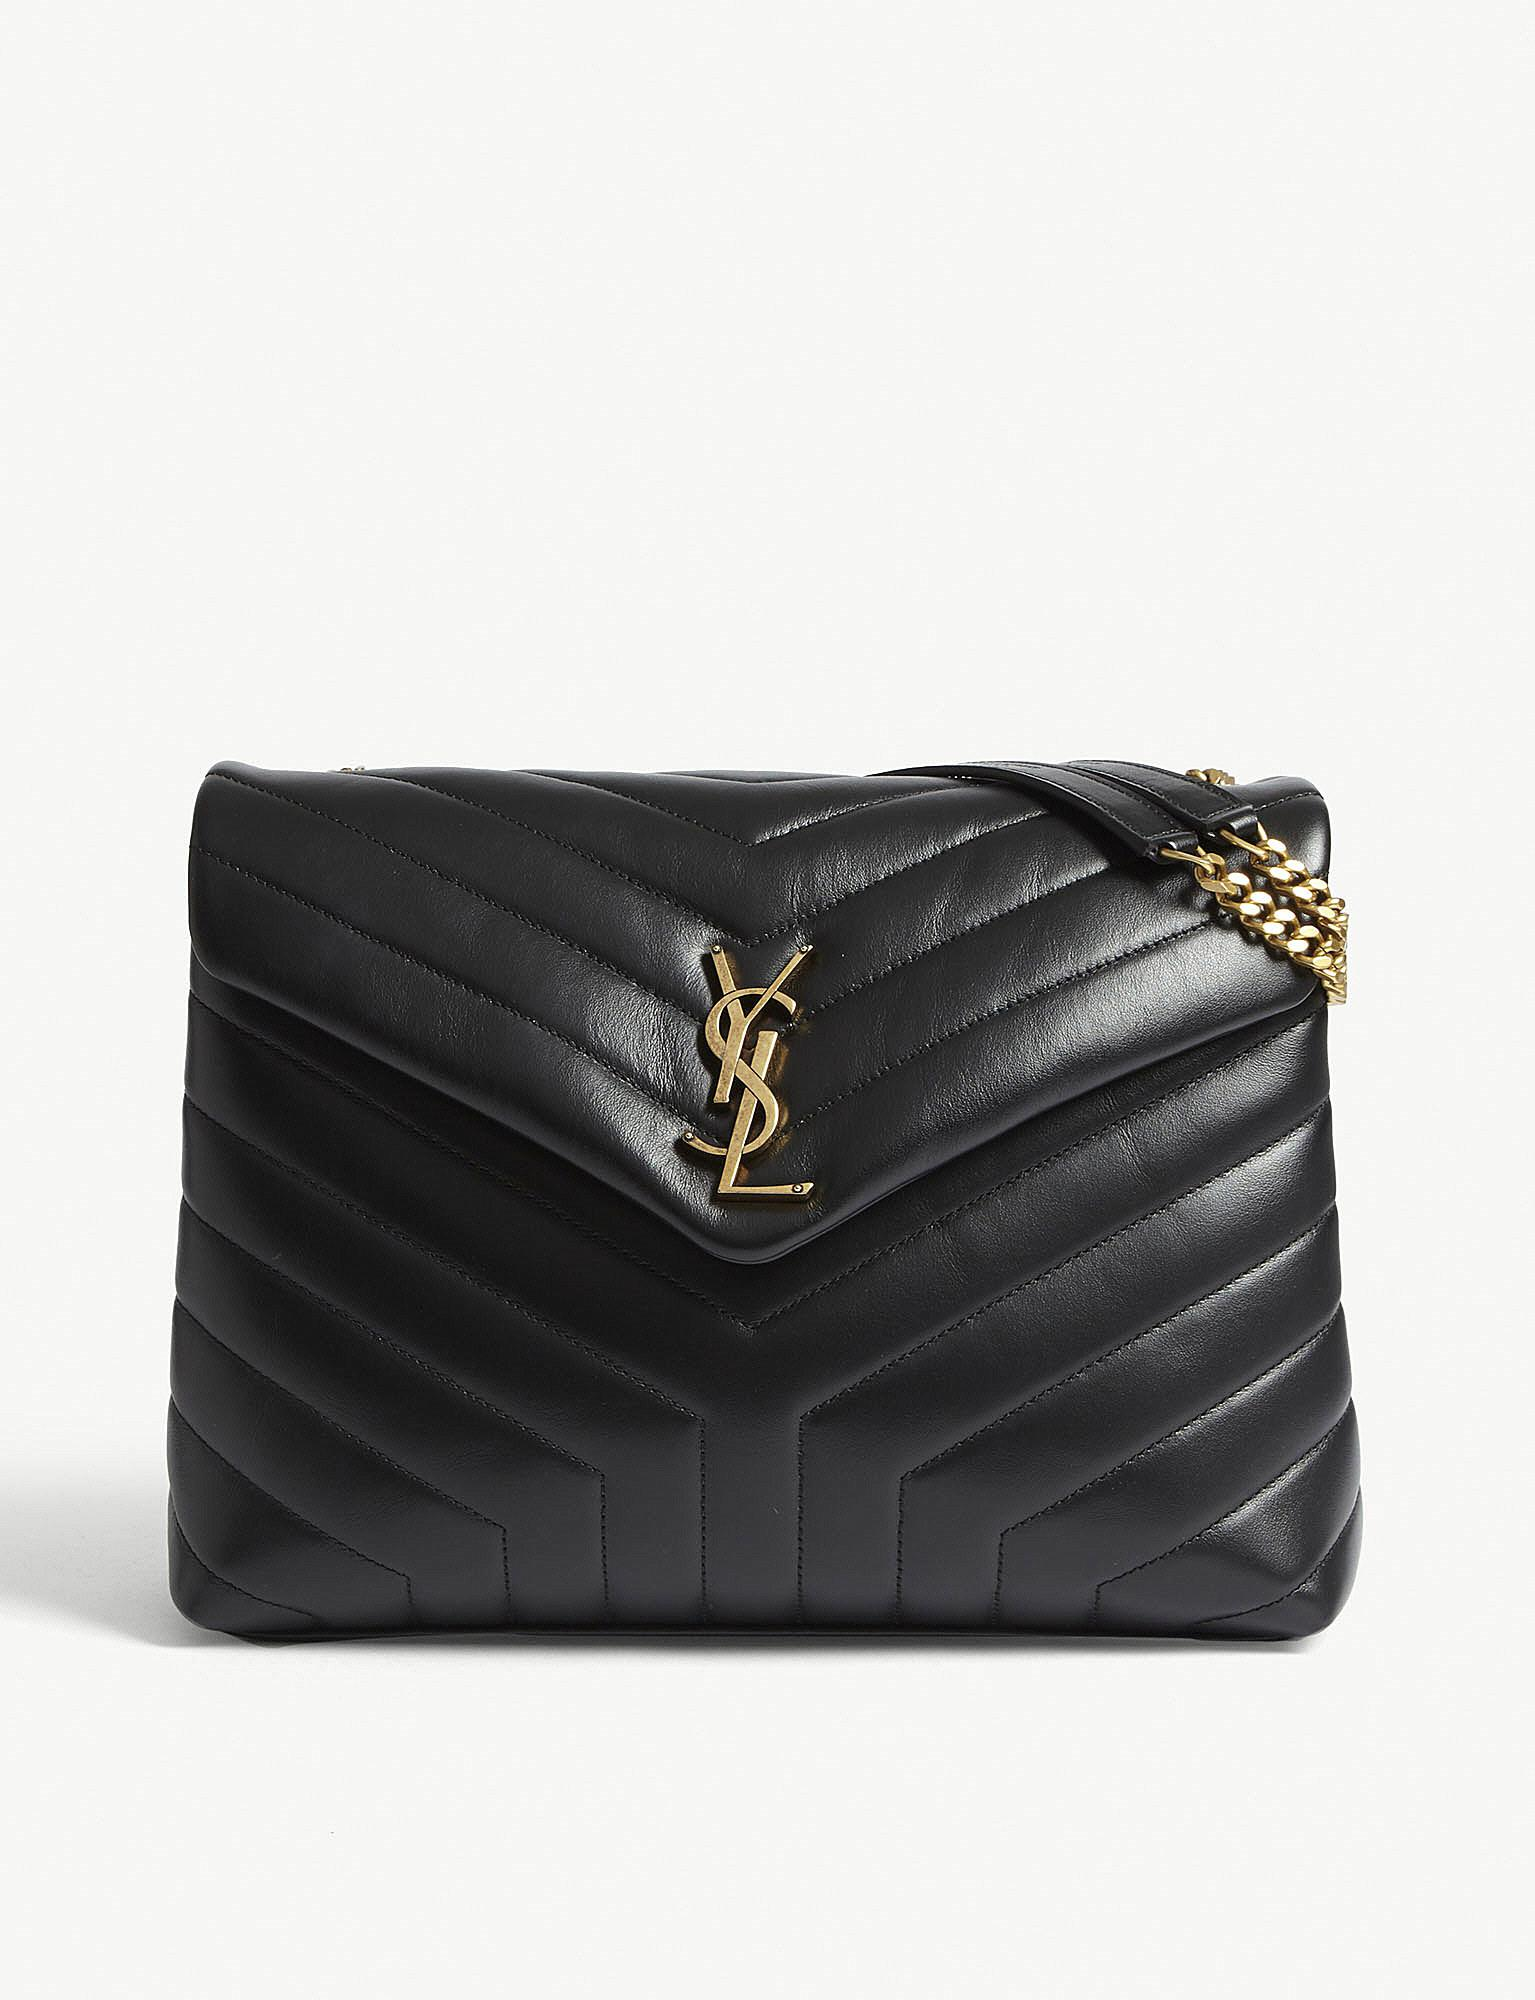 430790558c Saint Laurent. Women s Black Monogram Loulou Medium Leather Shoulder Bag